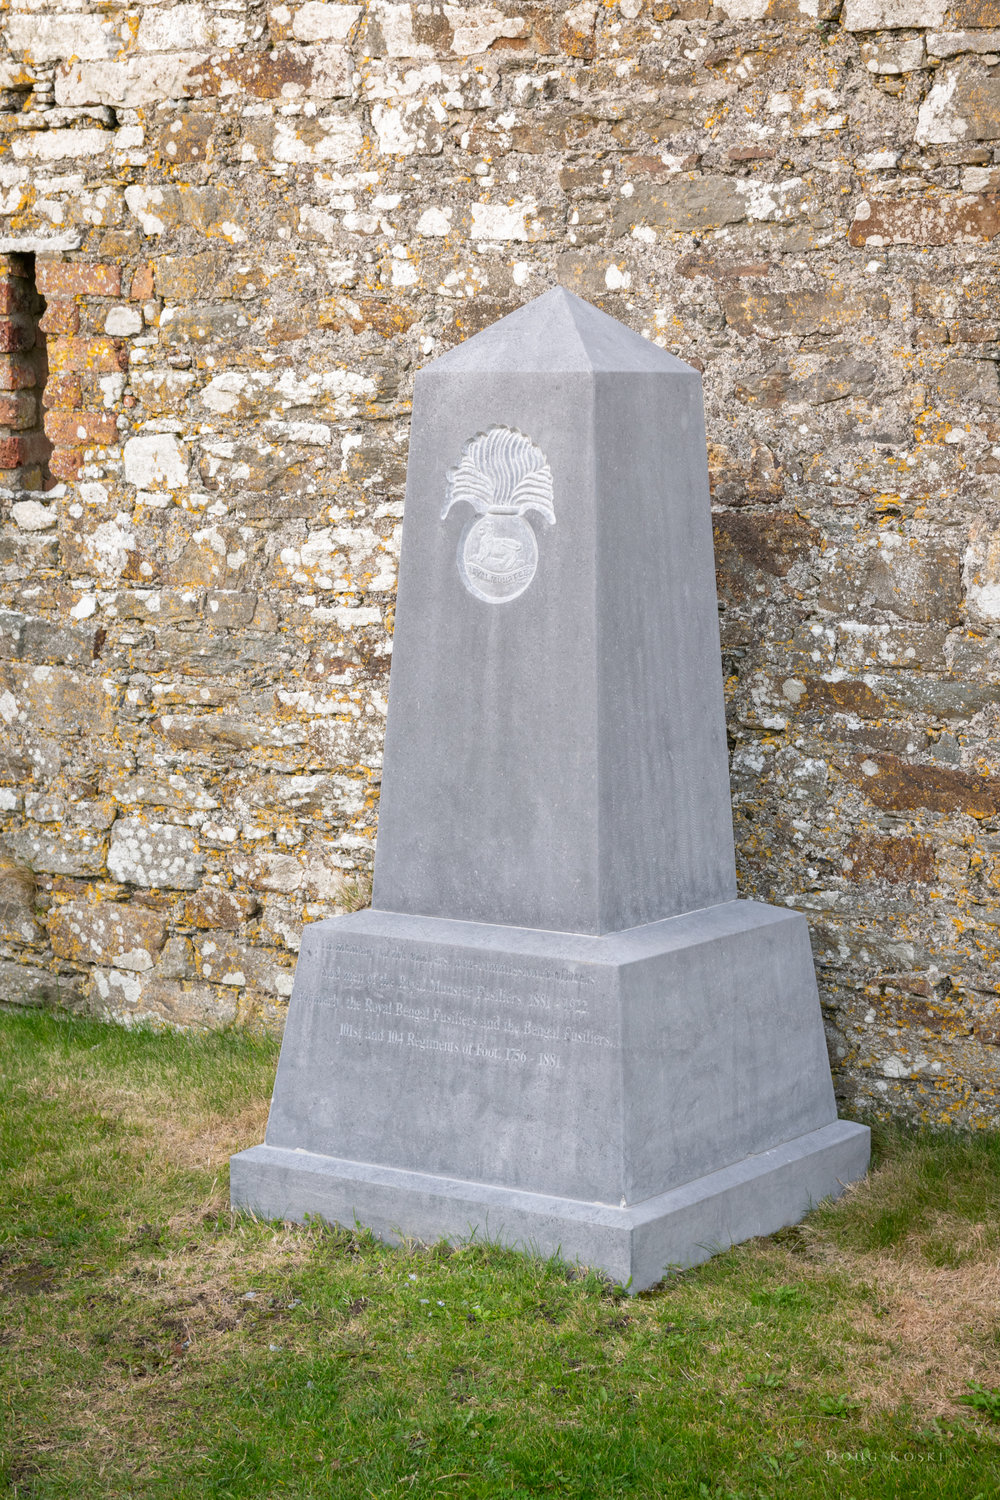 In Memory of… - the officers, non-commissioned officers, and men of the Royal Munster Fusiliers, 1881 - 1922. Formerly, the Royal Bengal Fusiliers and the Bengal Fusiliers, 101st and 104 Regiments of Foot. 1756 - 1881.